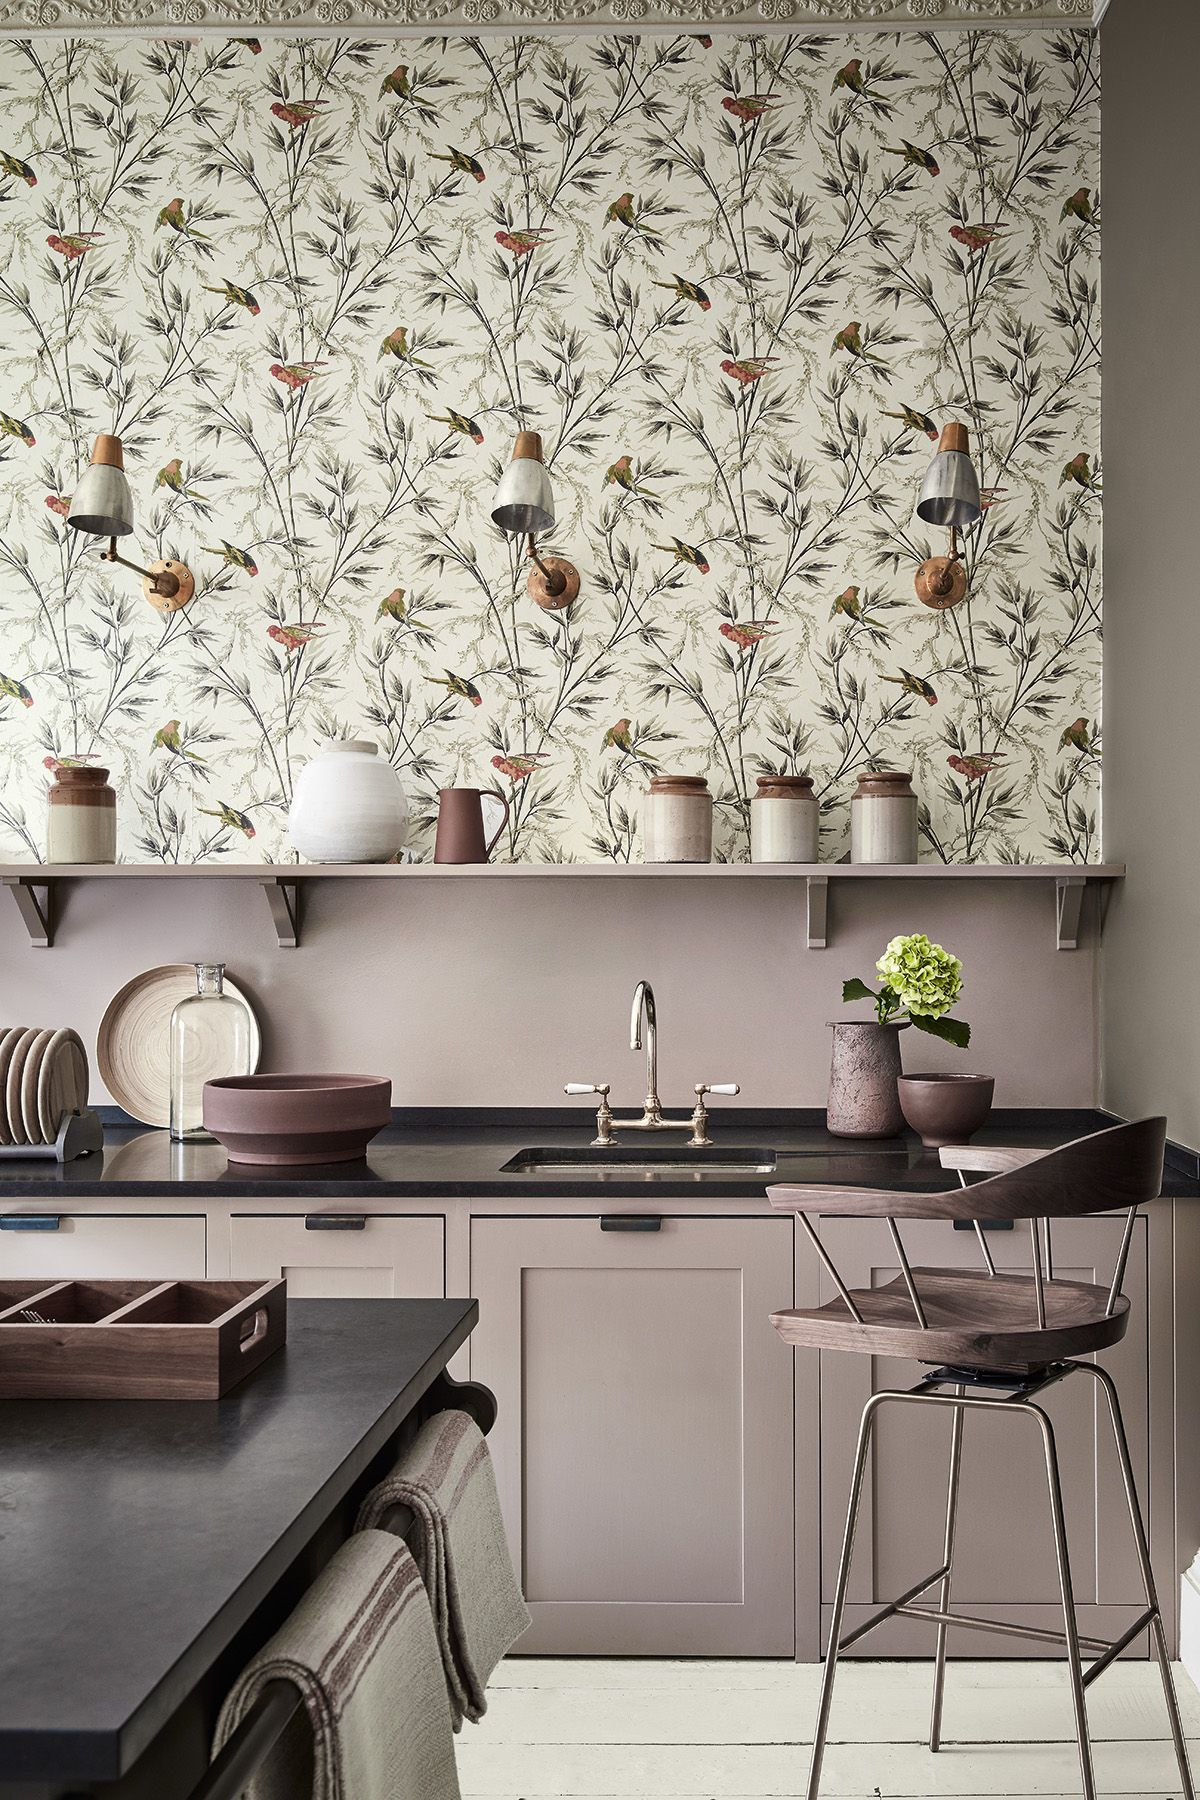 What is better - walls for painting or wallpaper, painting wallpaper in the kitchen